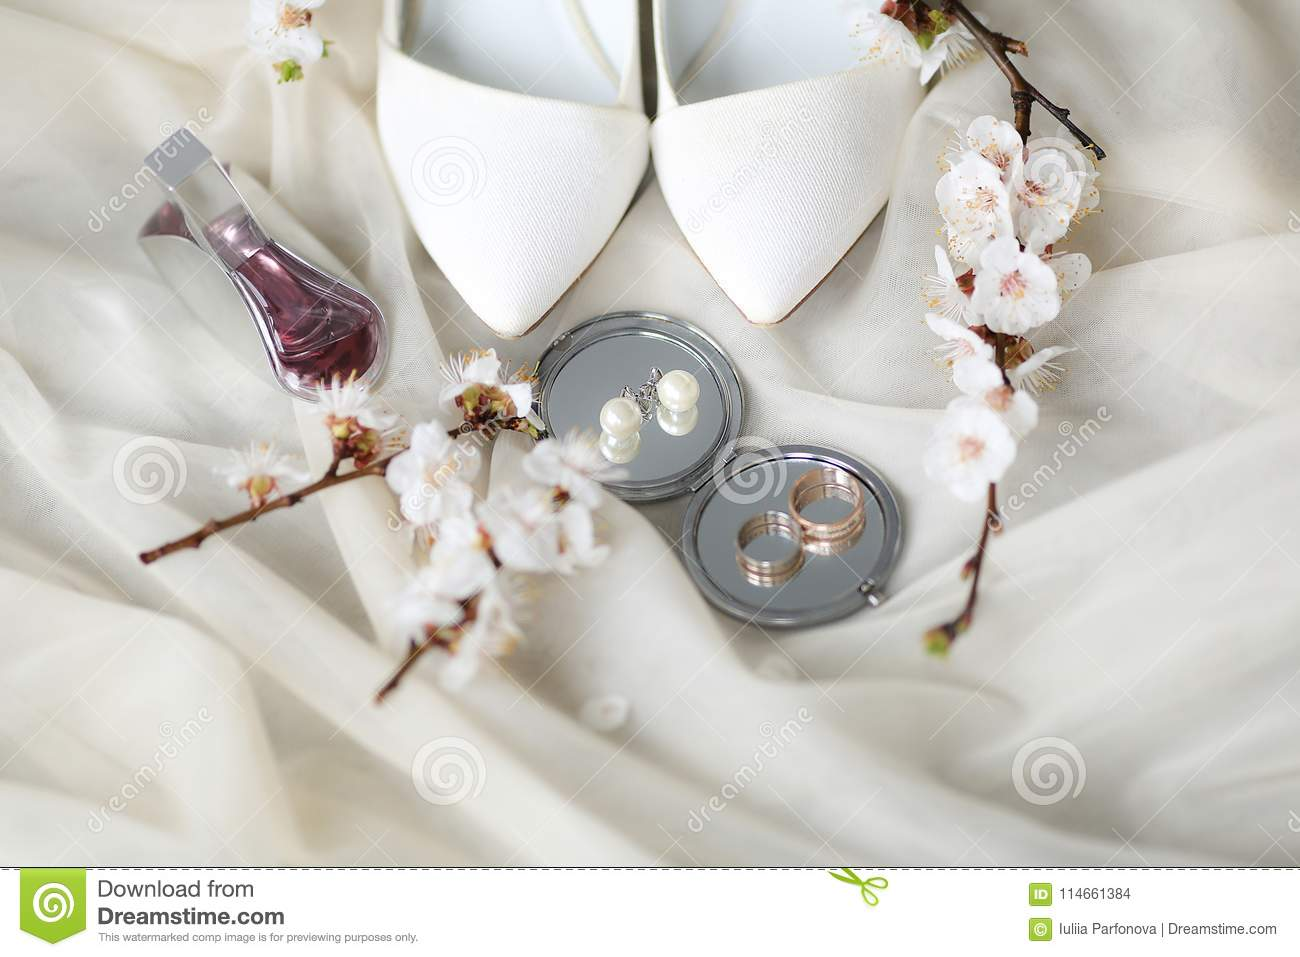 Wedding Rings And Shoes On Wedding Morning Of The Bride Stock